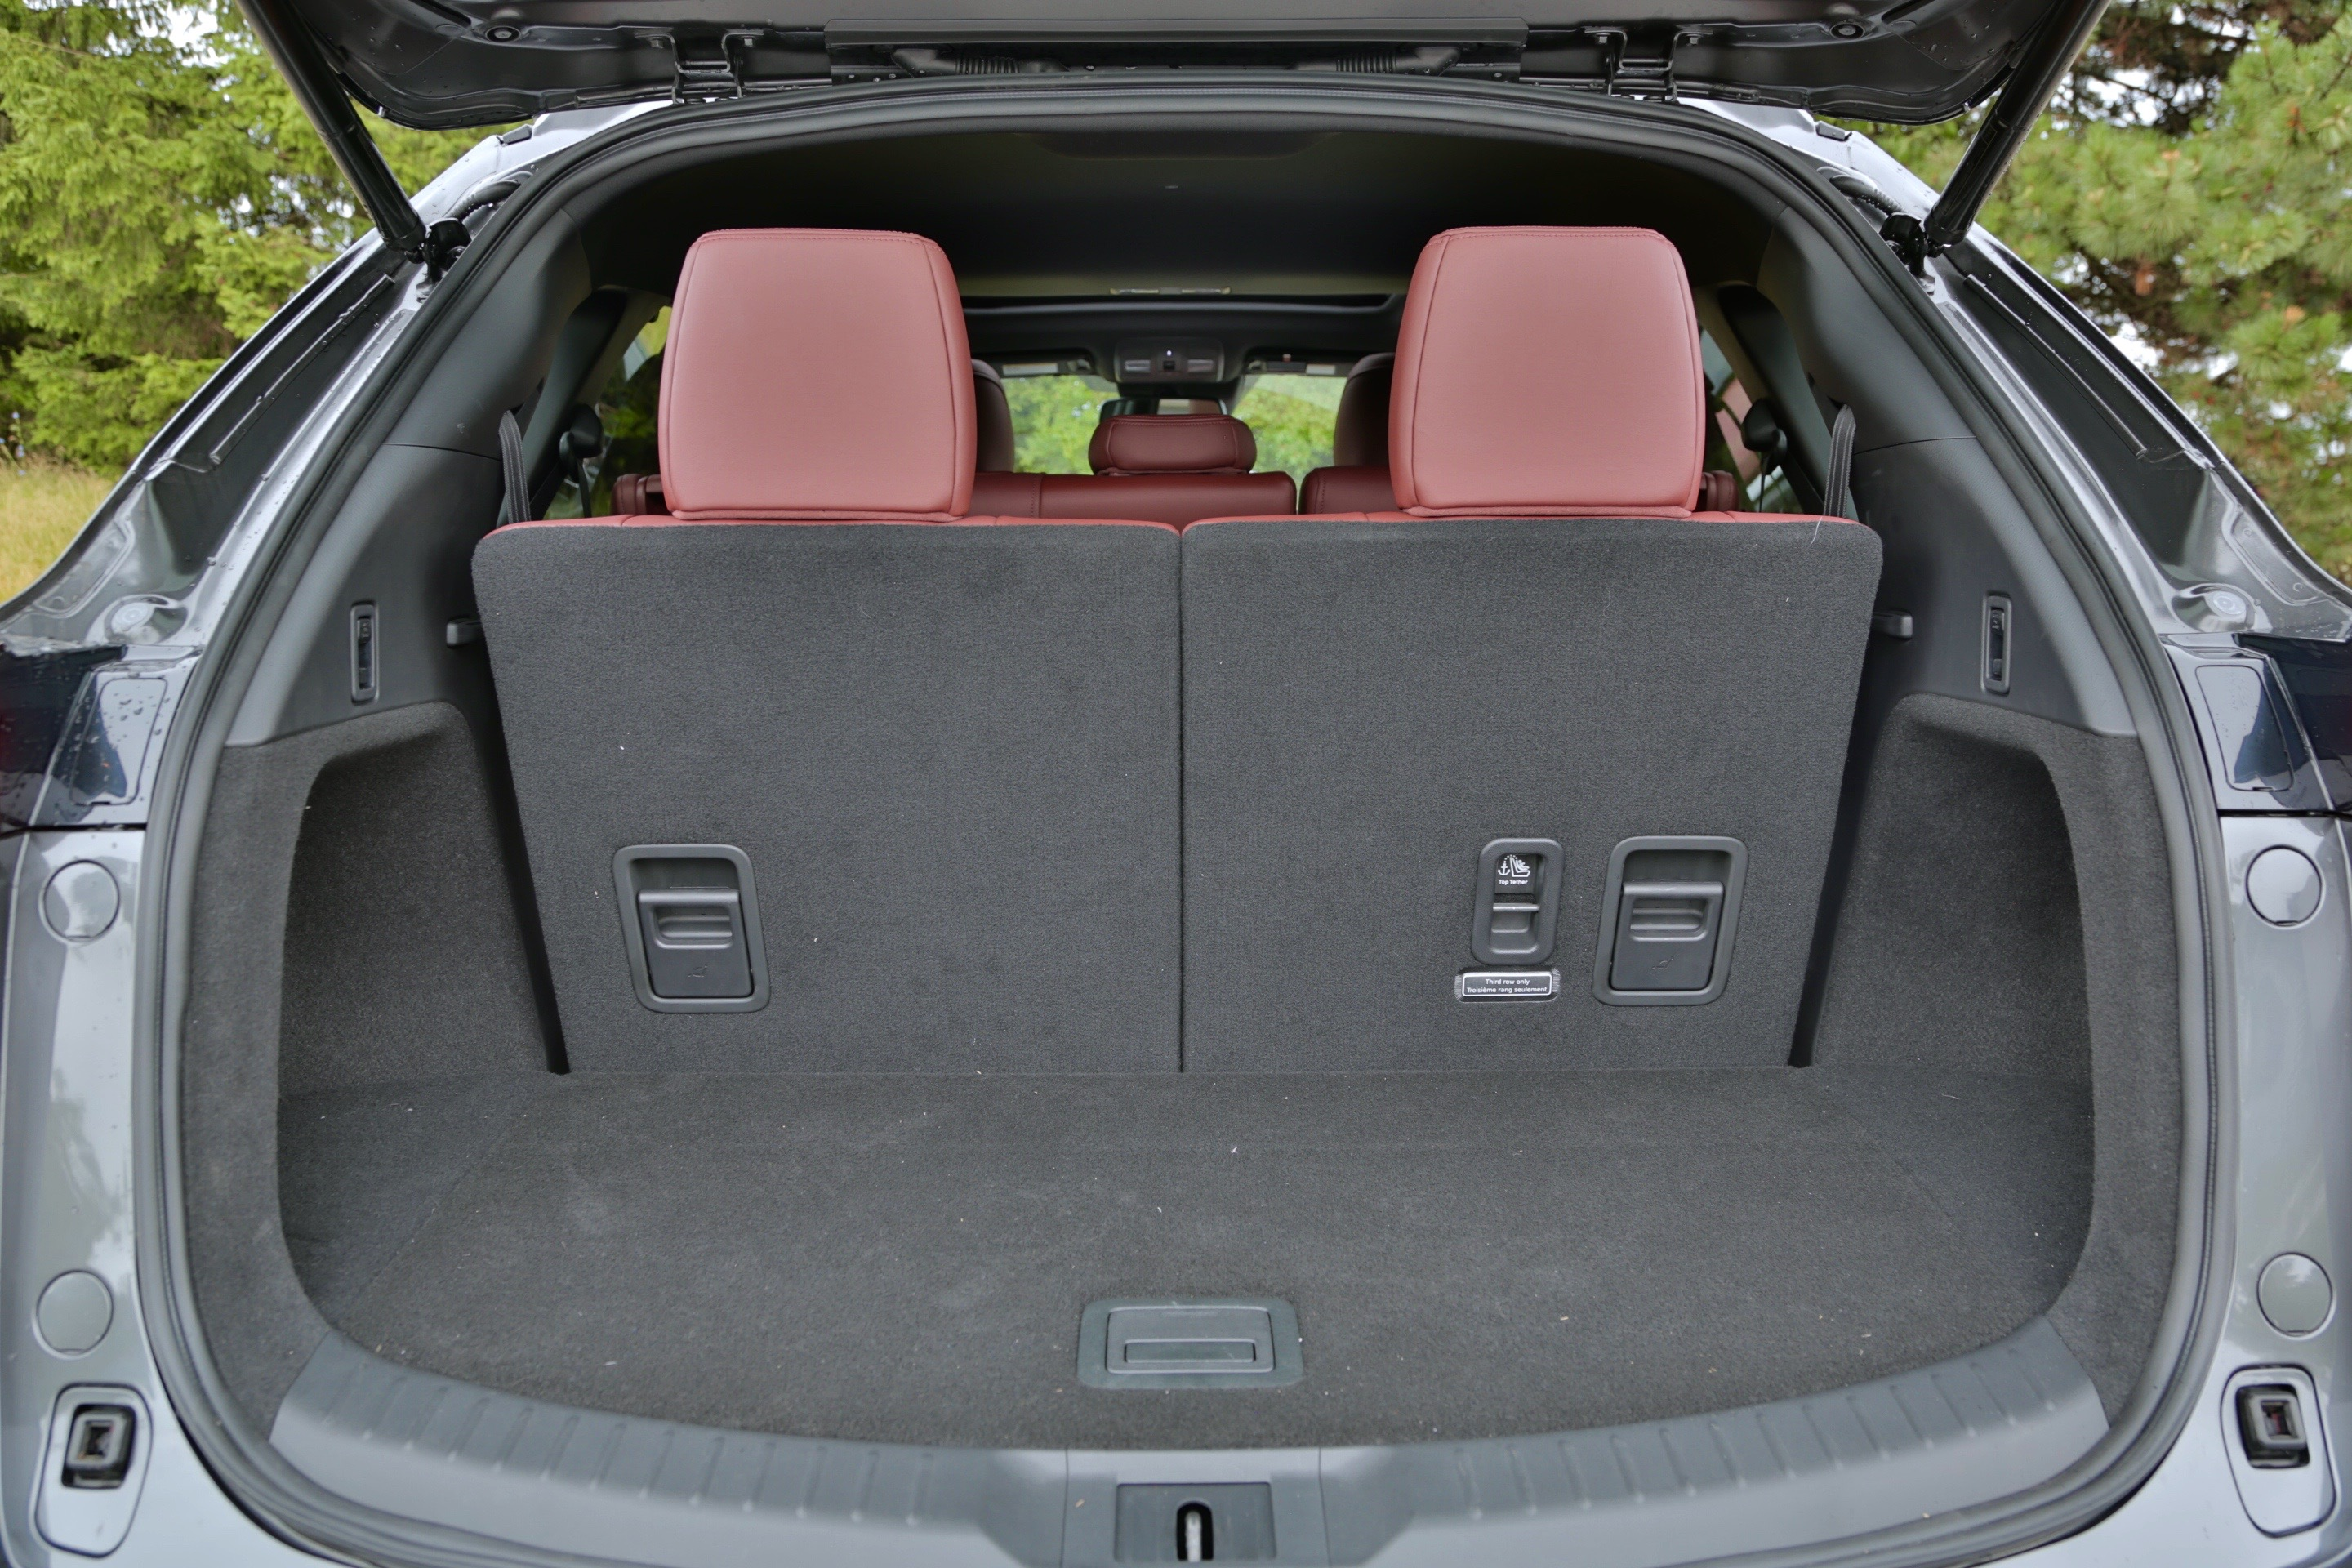 2016 Mazda CX-9 Long-Term Test Update: Deep Dive into Cargo Capacity ...